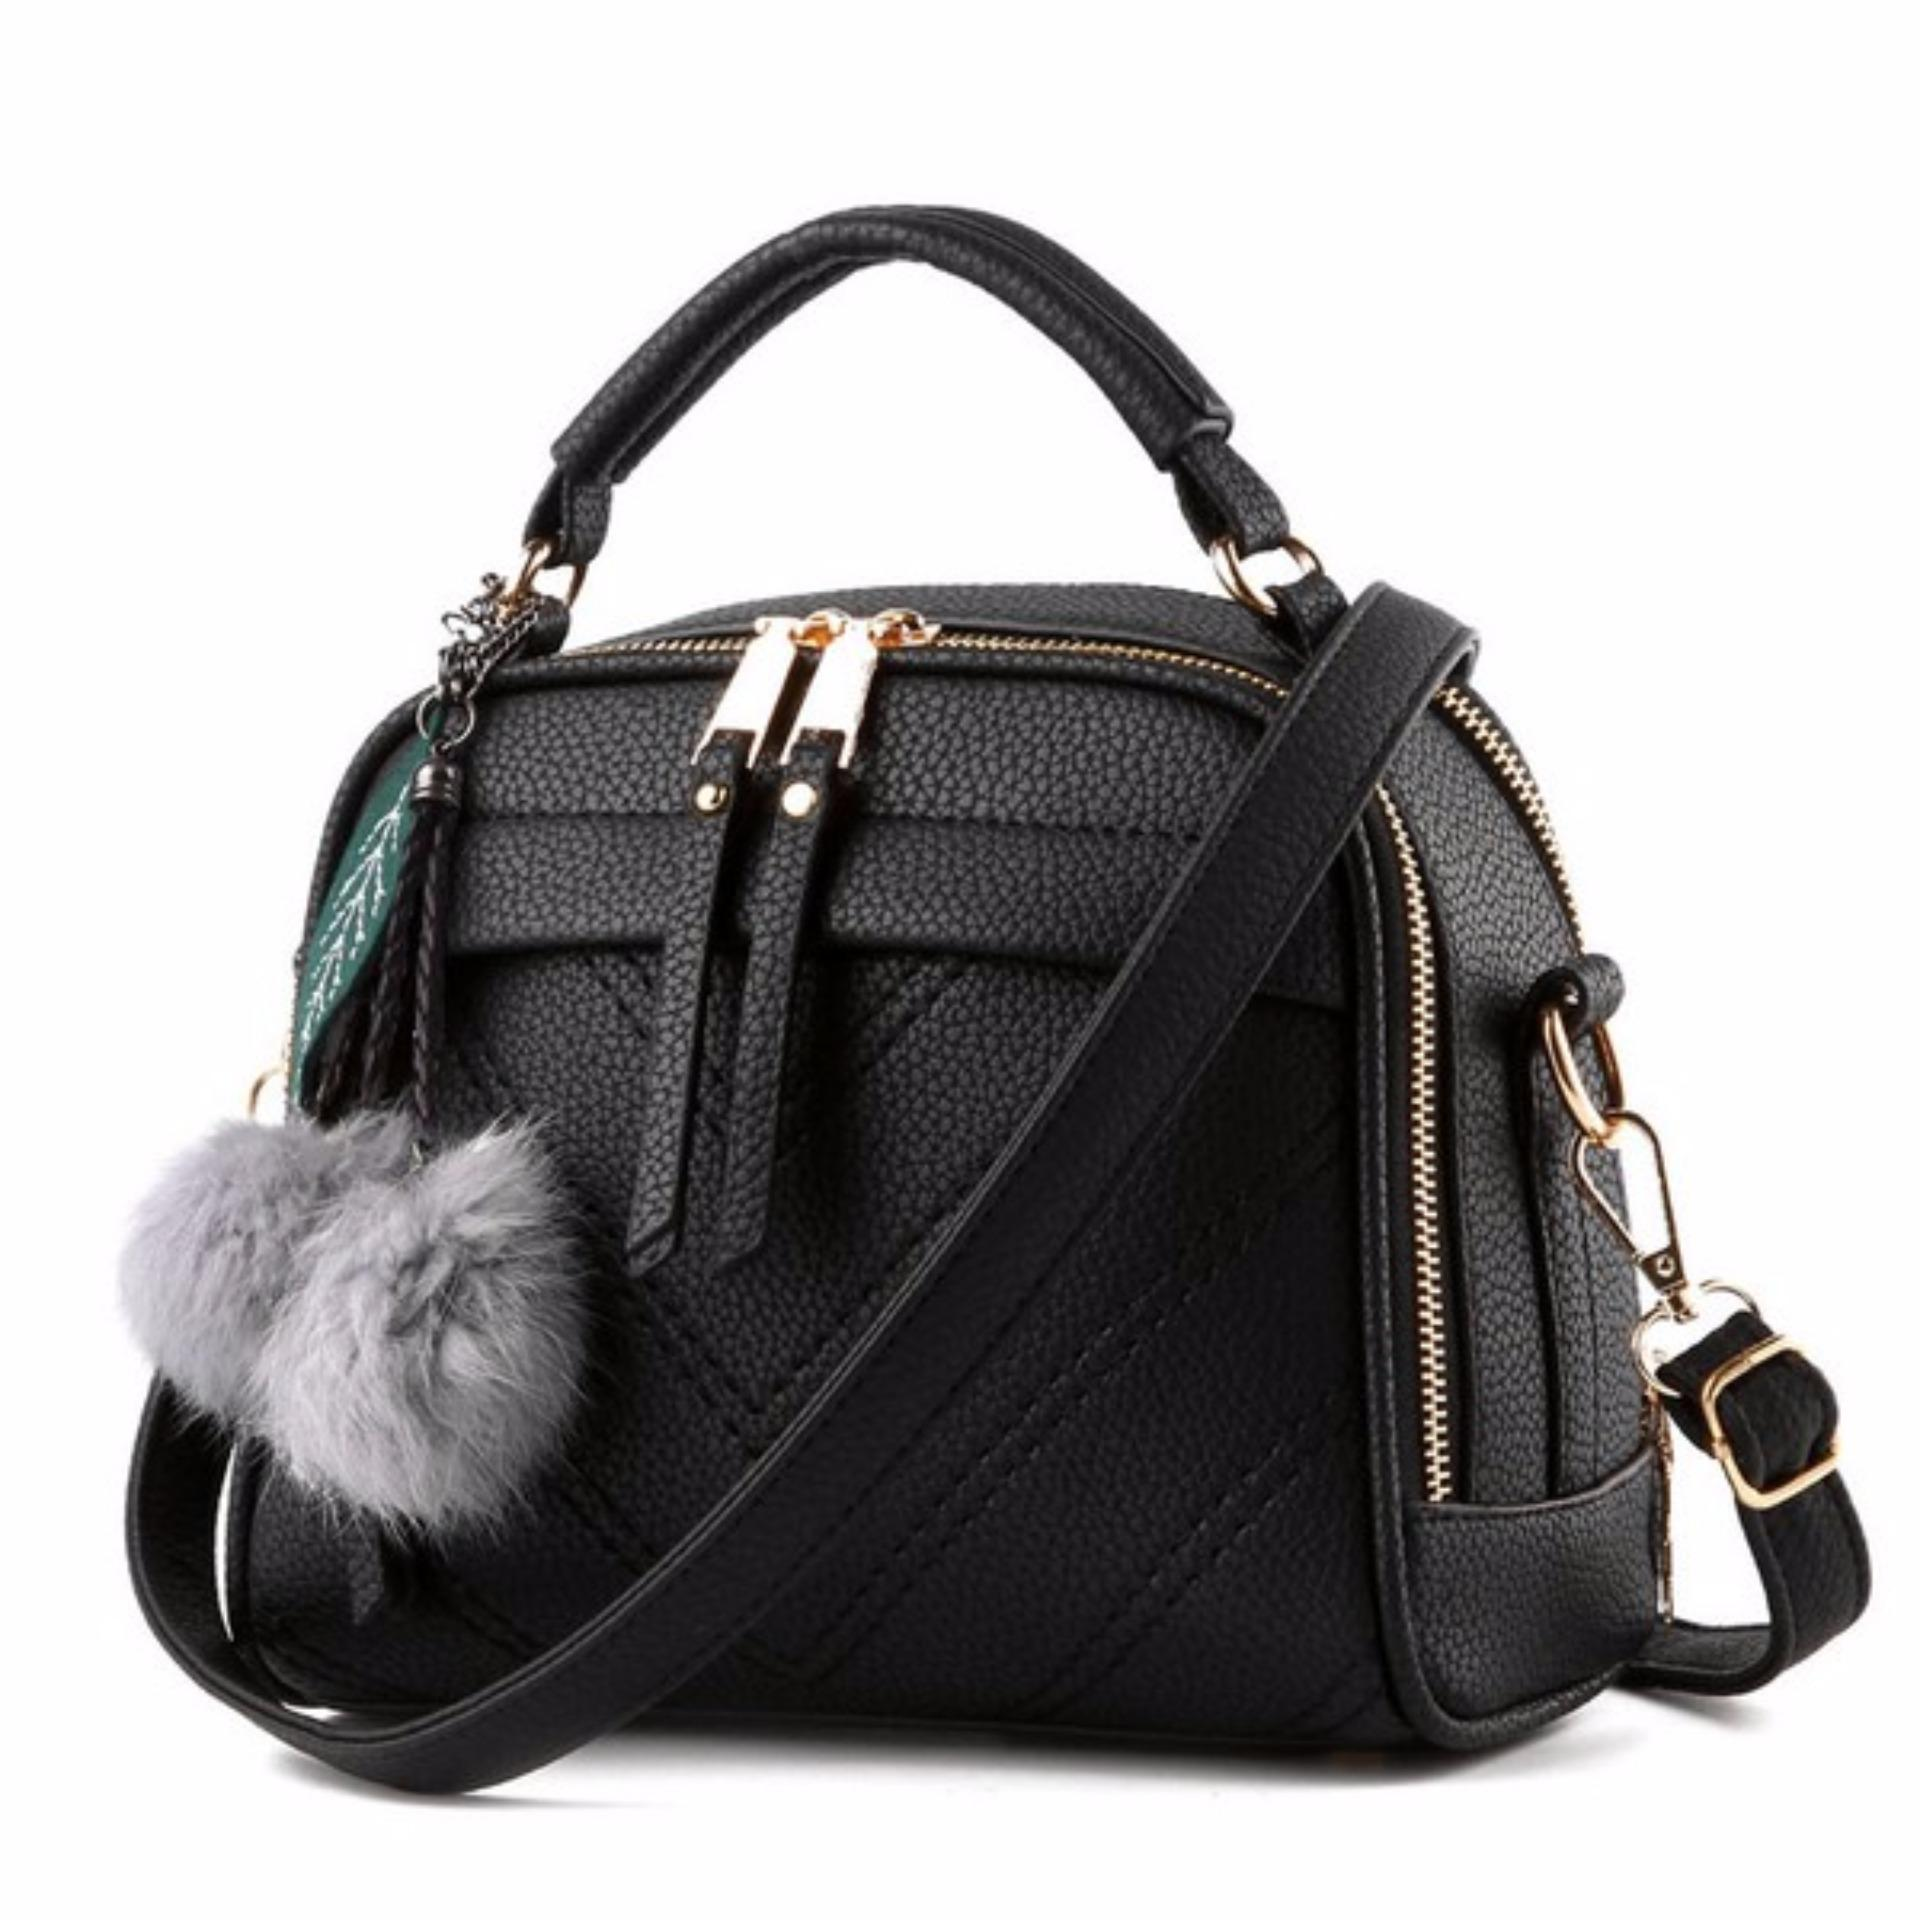 Vicria Tas Branded Wanita With Pompom - High Quality PU Leather Korean  Elegant Bag Style - 56baef9f78